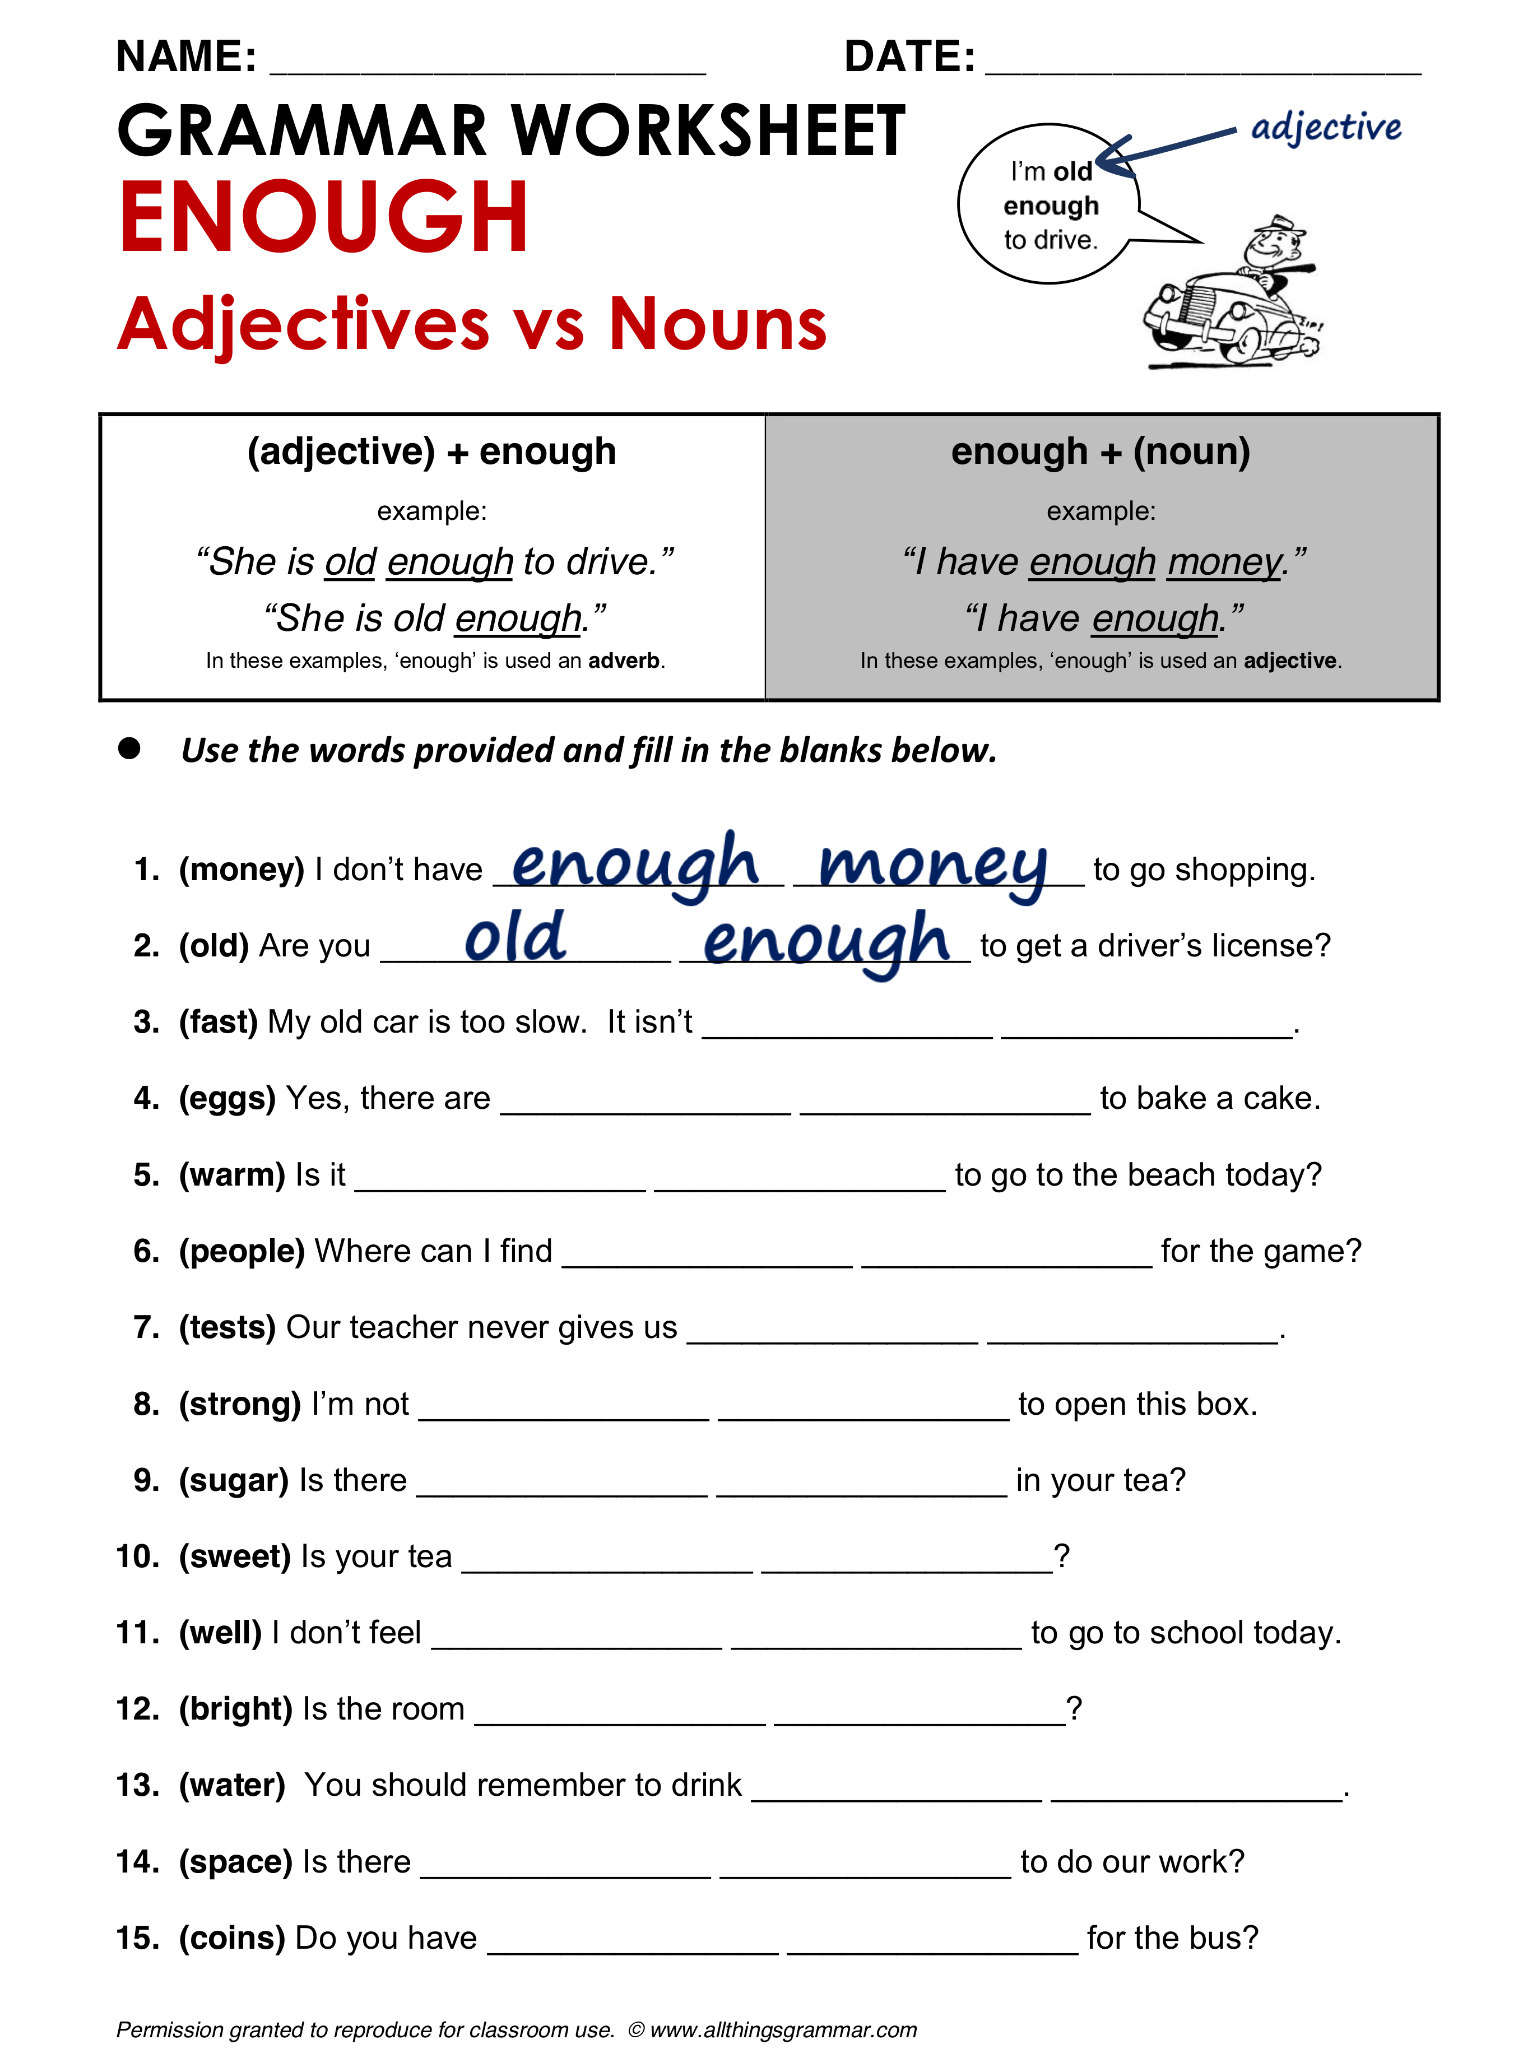 English Grammar Enough Adjectives Vs Nouns